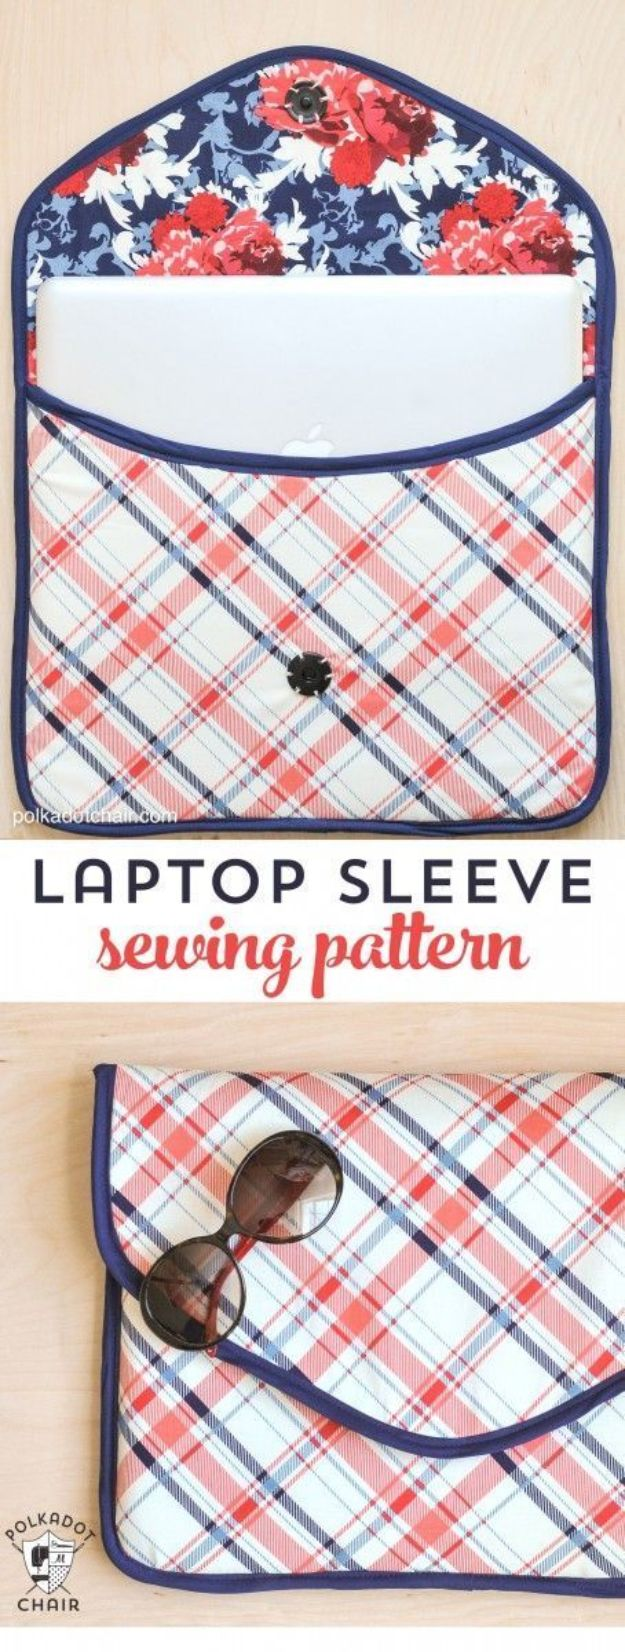 DIY Laptop Bags - DIY Laptop Sleeve Clutch - Easy Bag Projects to Make For Your Computer - Cool and Cheap Homemade Messnger Bags, Cases for Laptops - Shoulder Bag and Briefcase, Backpack